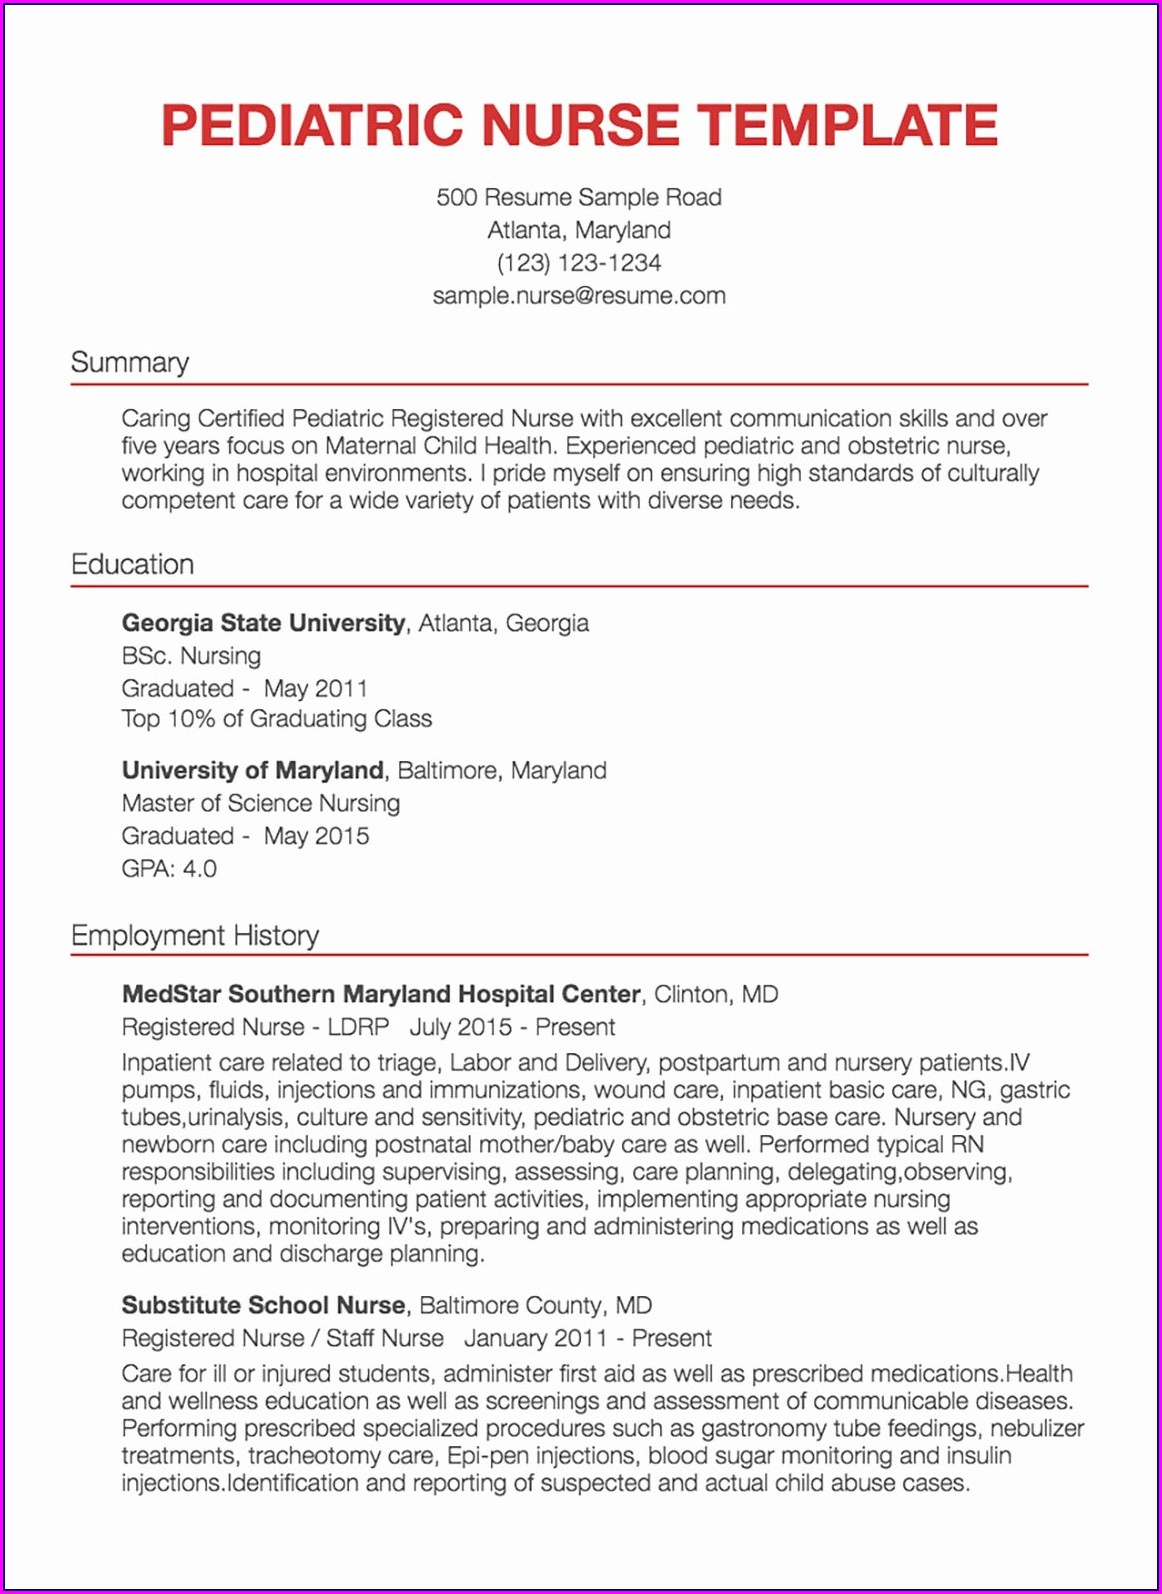 Staff Nurse Sample Resume For Nurses With Experience